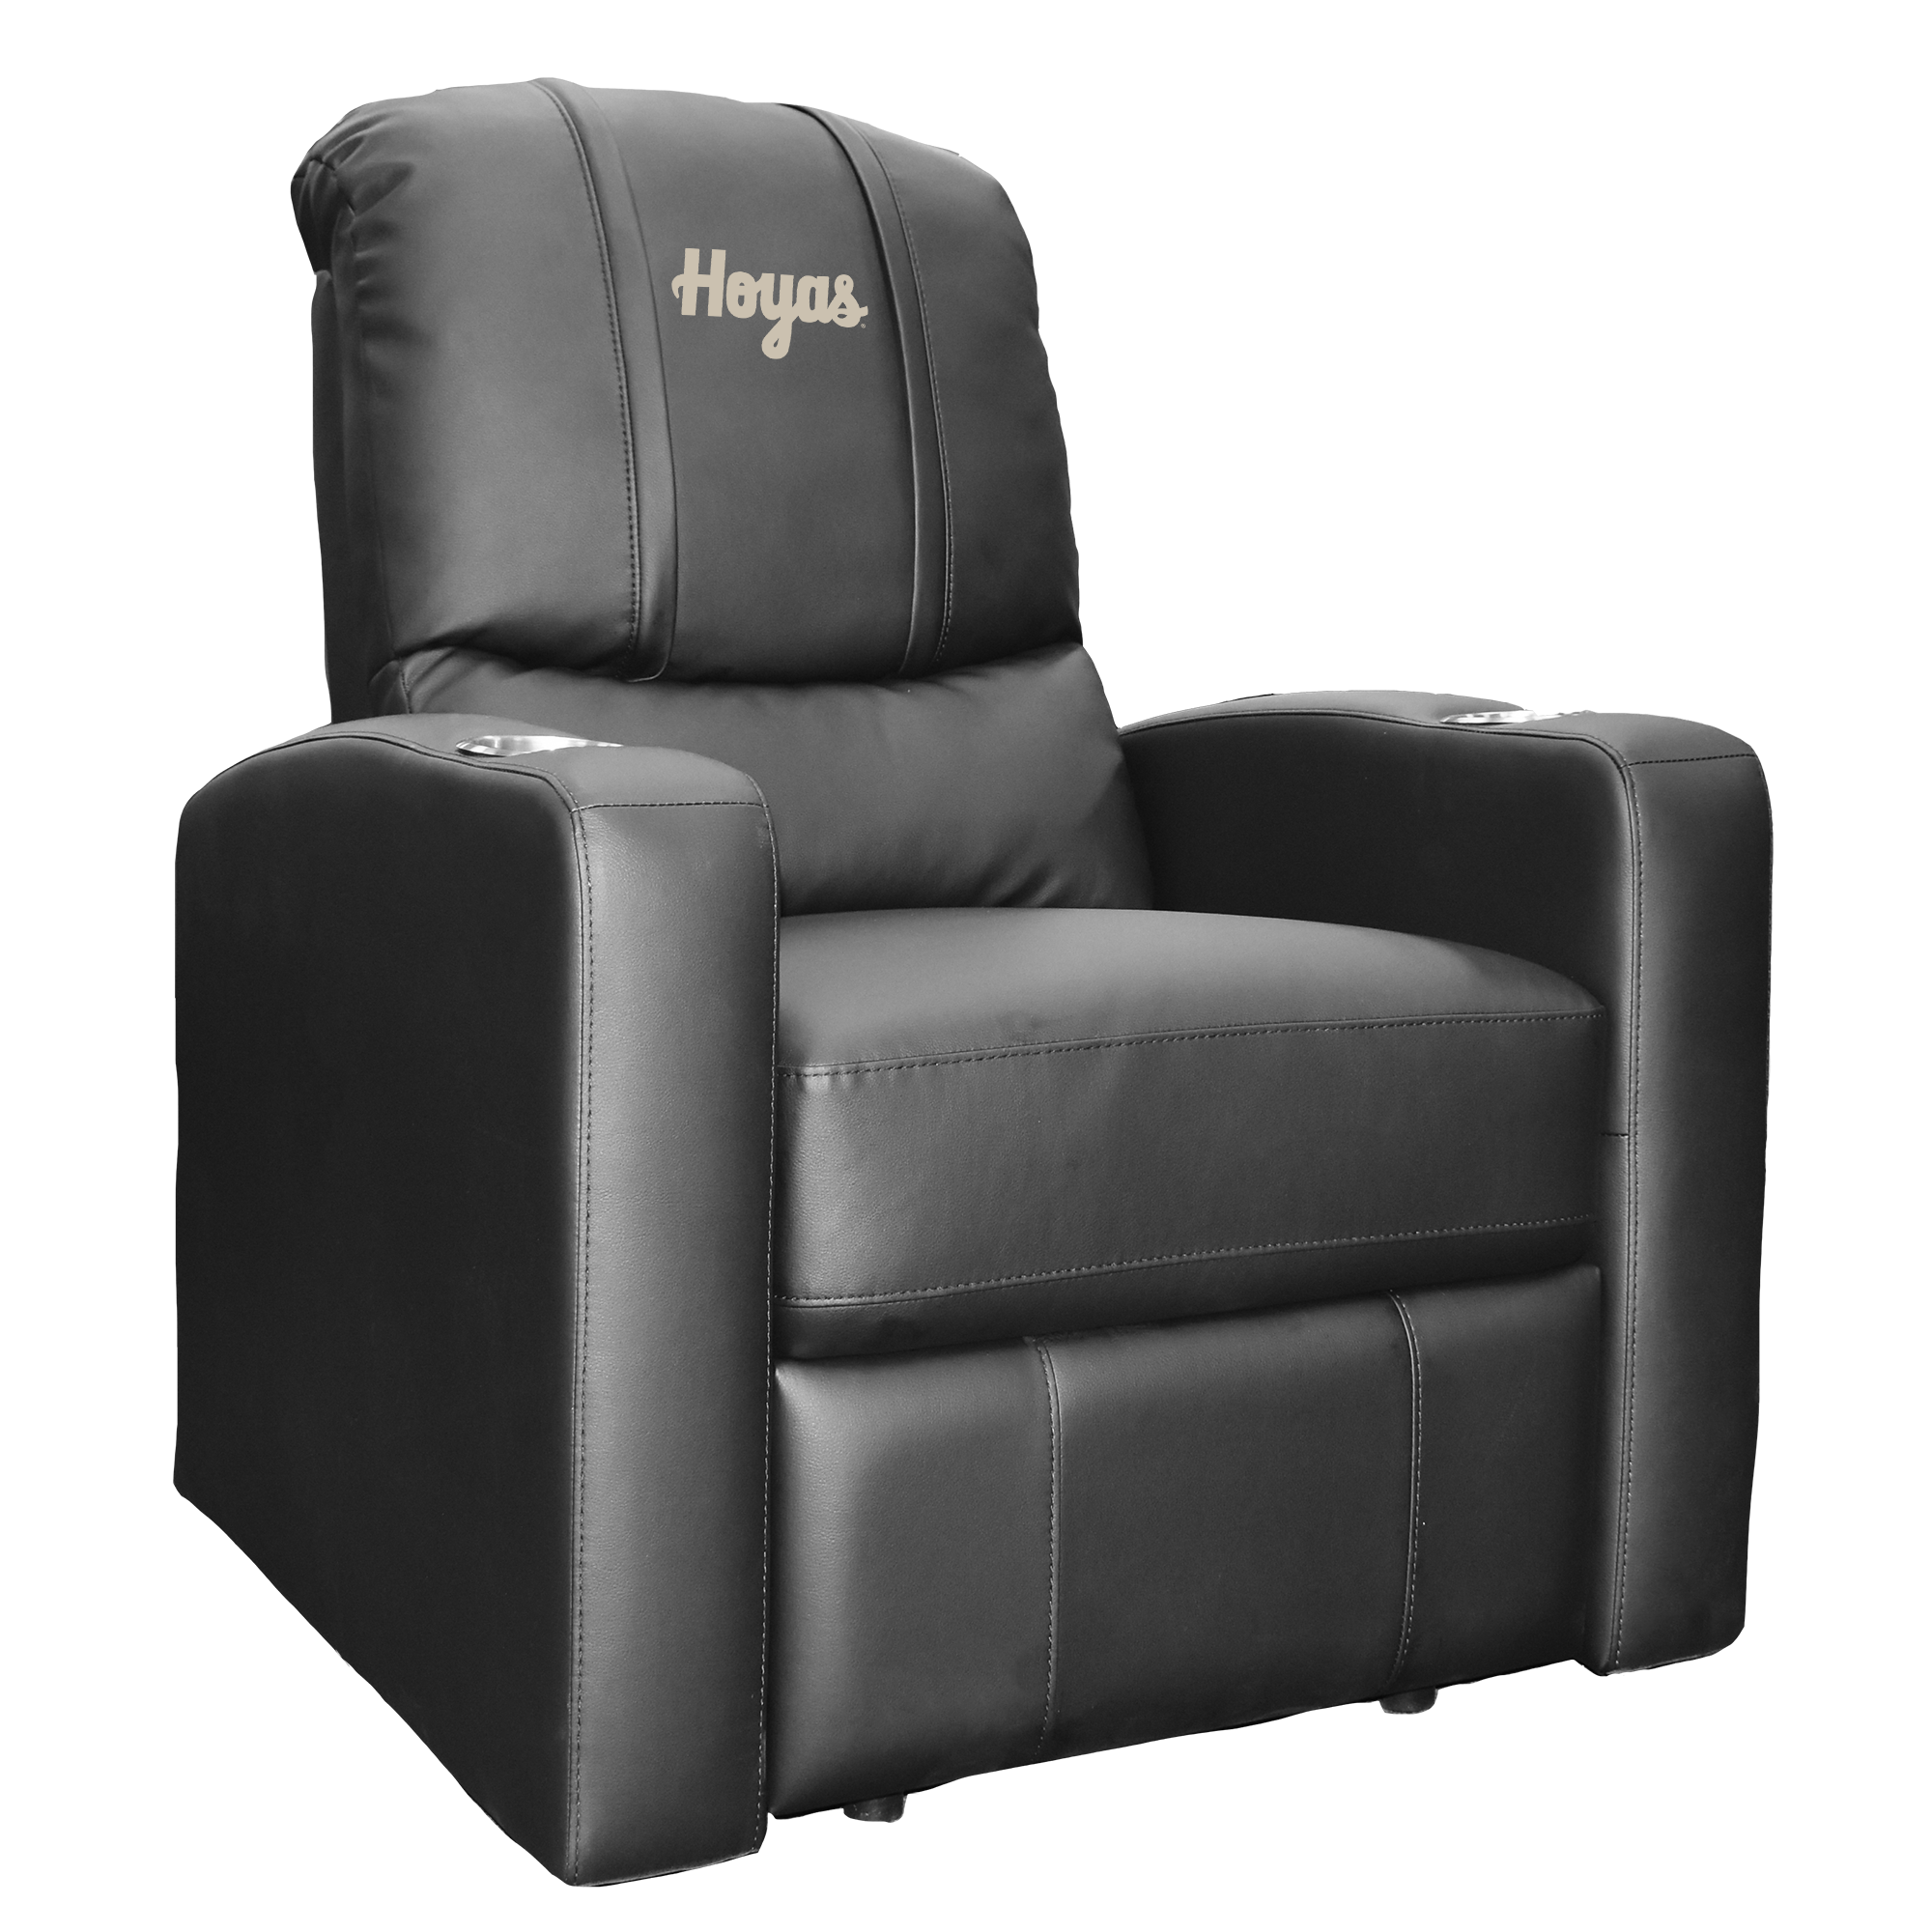 Stealth Recliner with Georgetown Hoyas Alternate